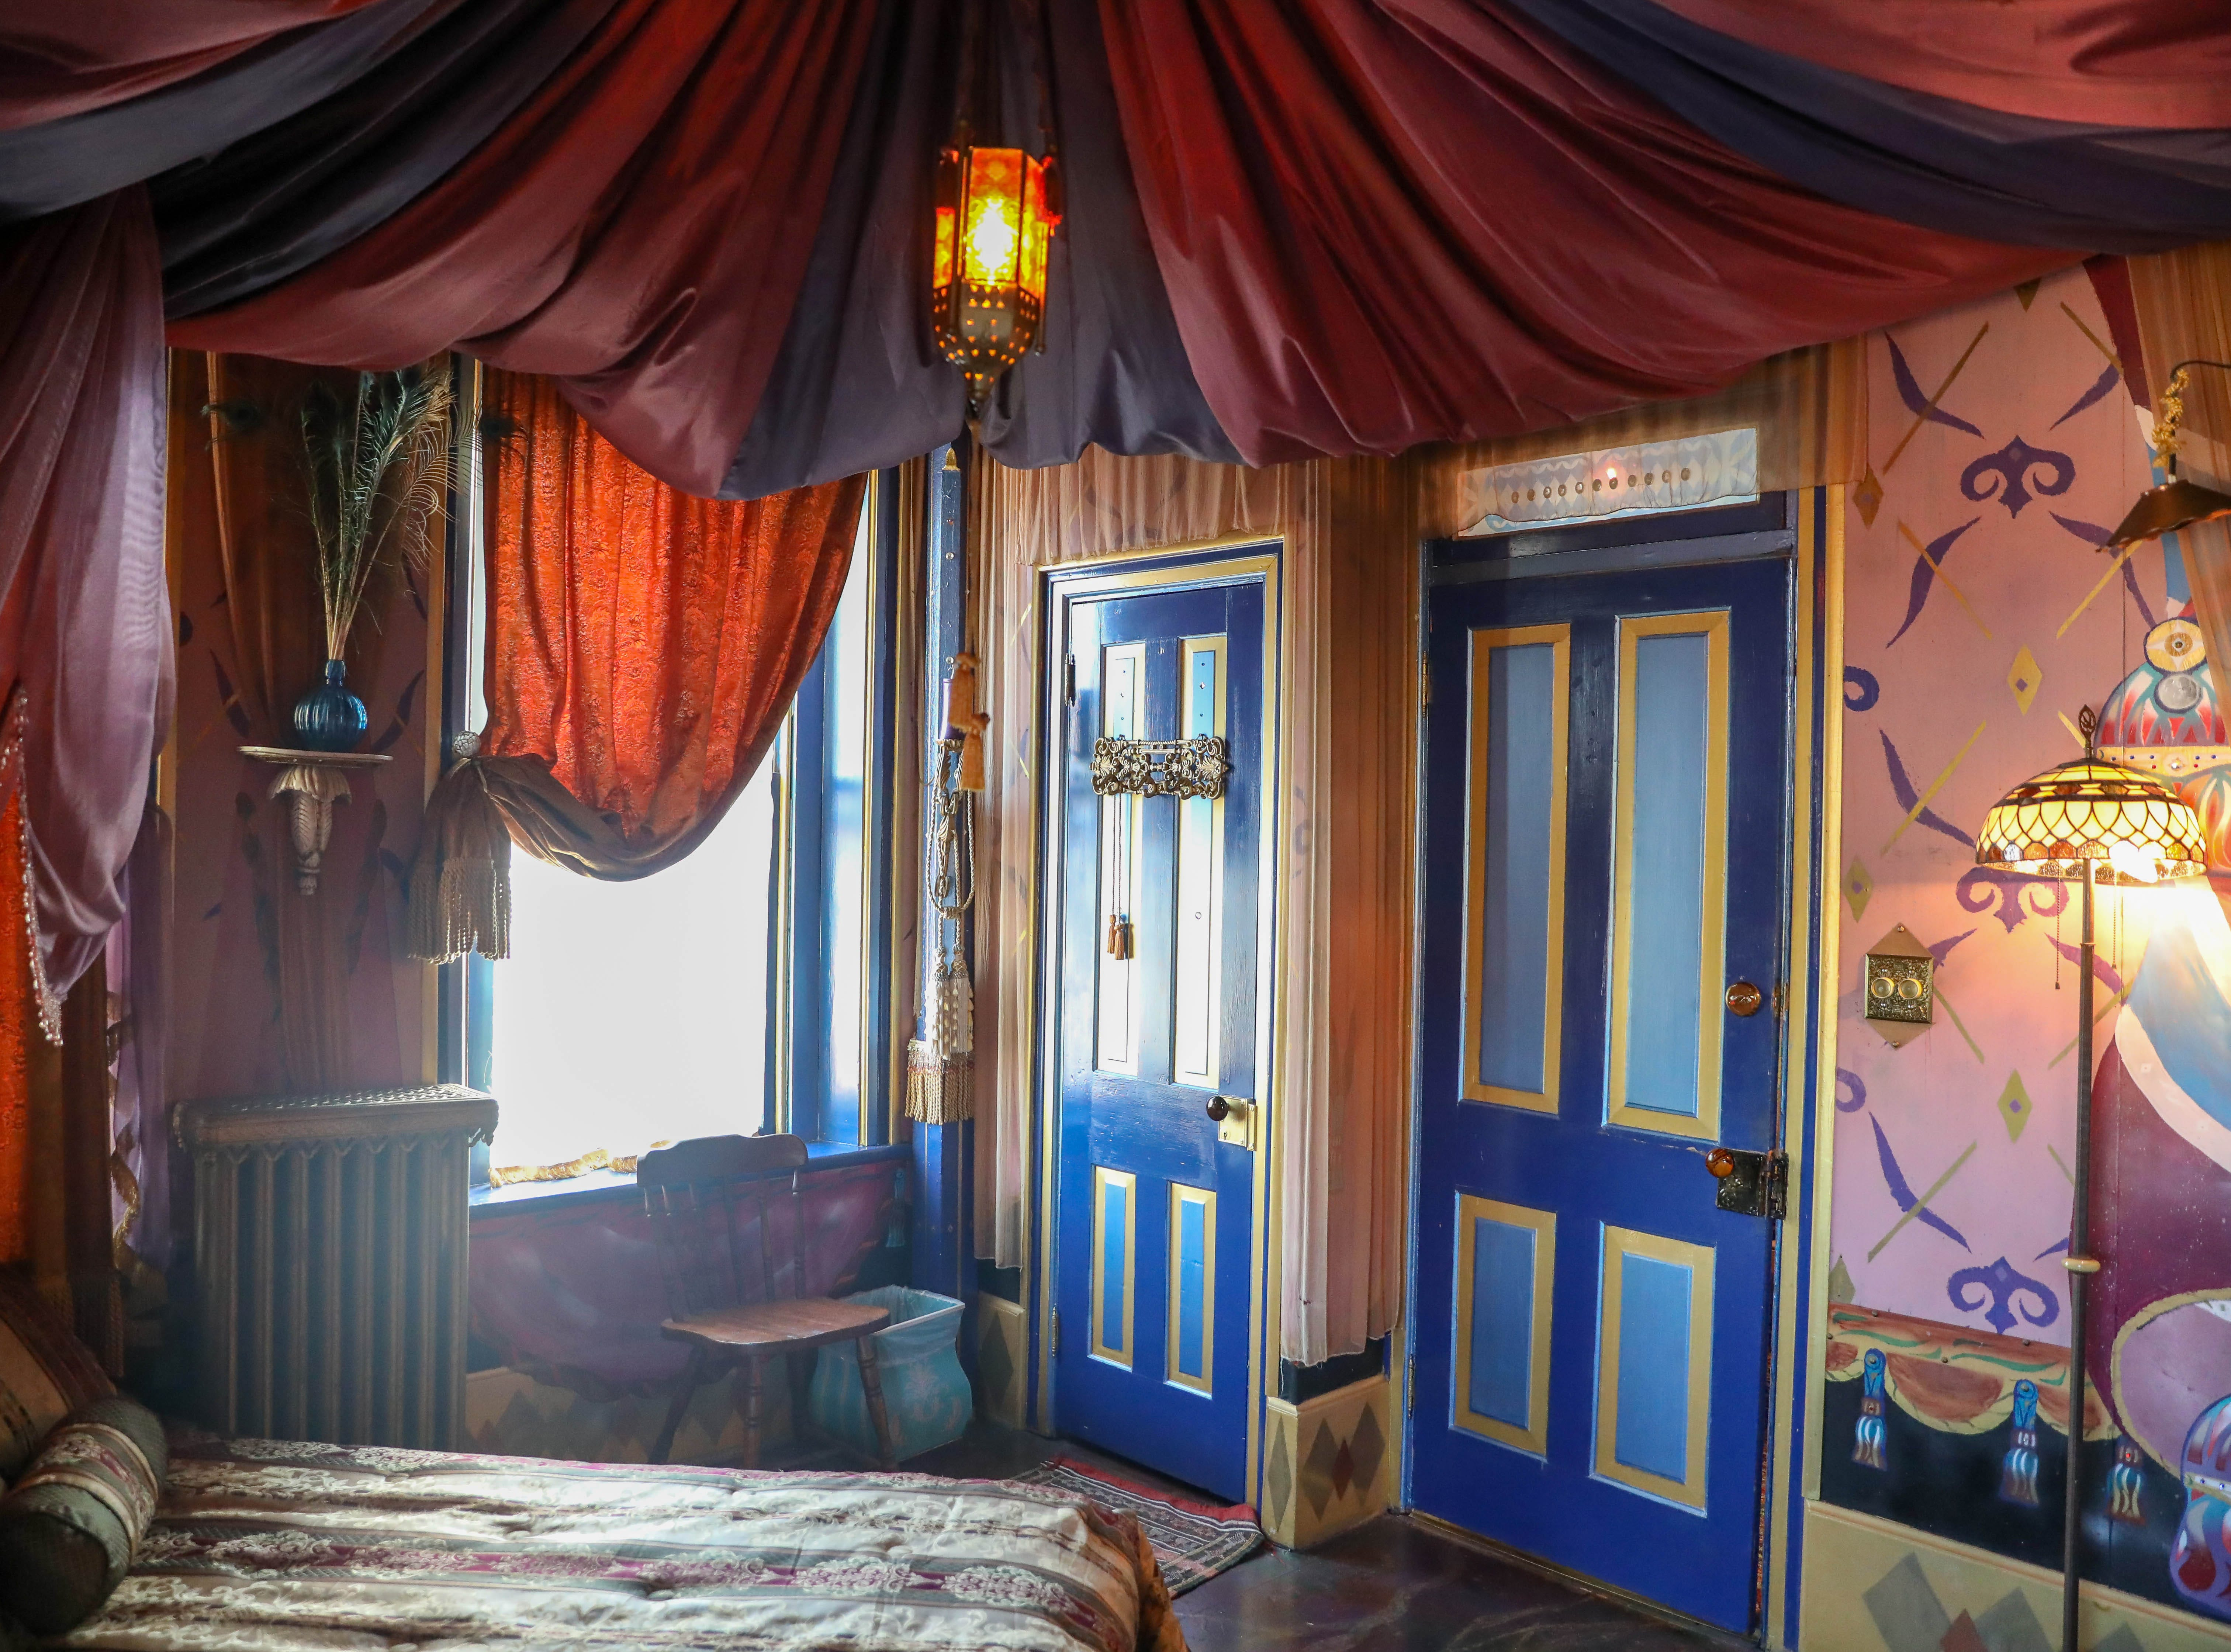 """Inside the  """"Arabian Nights"""" room at Bube's Brewery in Mt. Joy. The third floor of the Victorian hotel is home to 8 speciality themed rooms and a """"grand suite."""""""